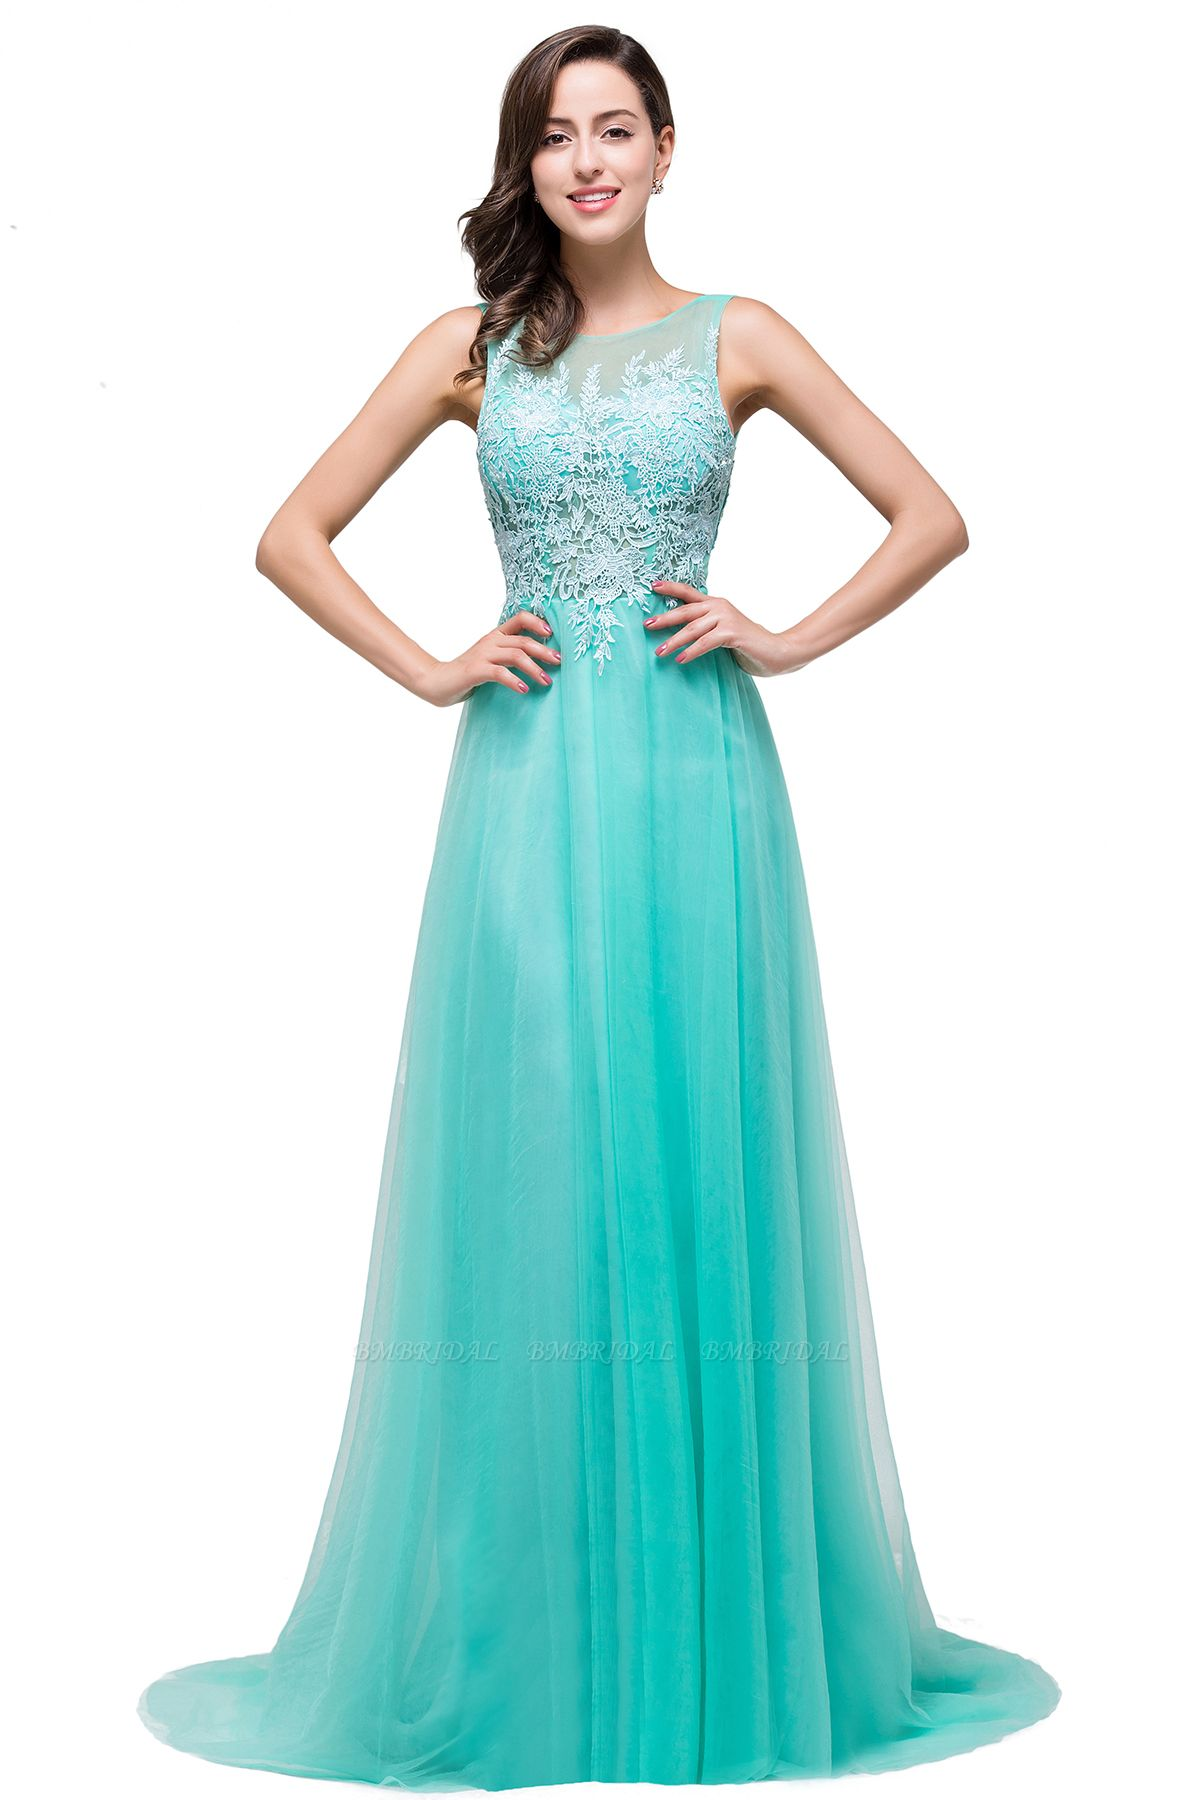 BMbridal A-line Court Train Tulle Evening Dress with Appliques